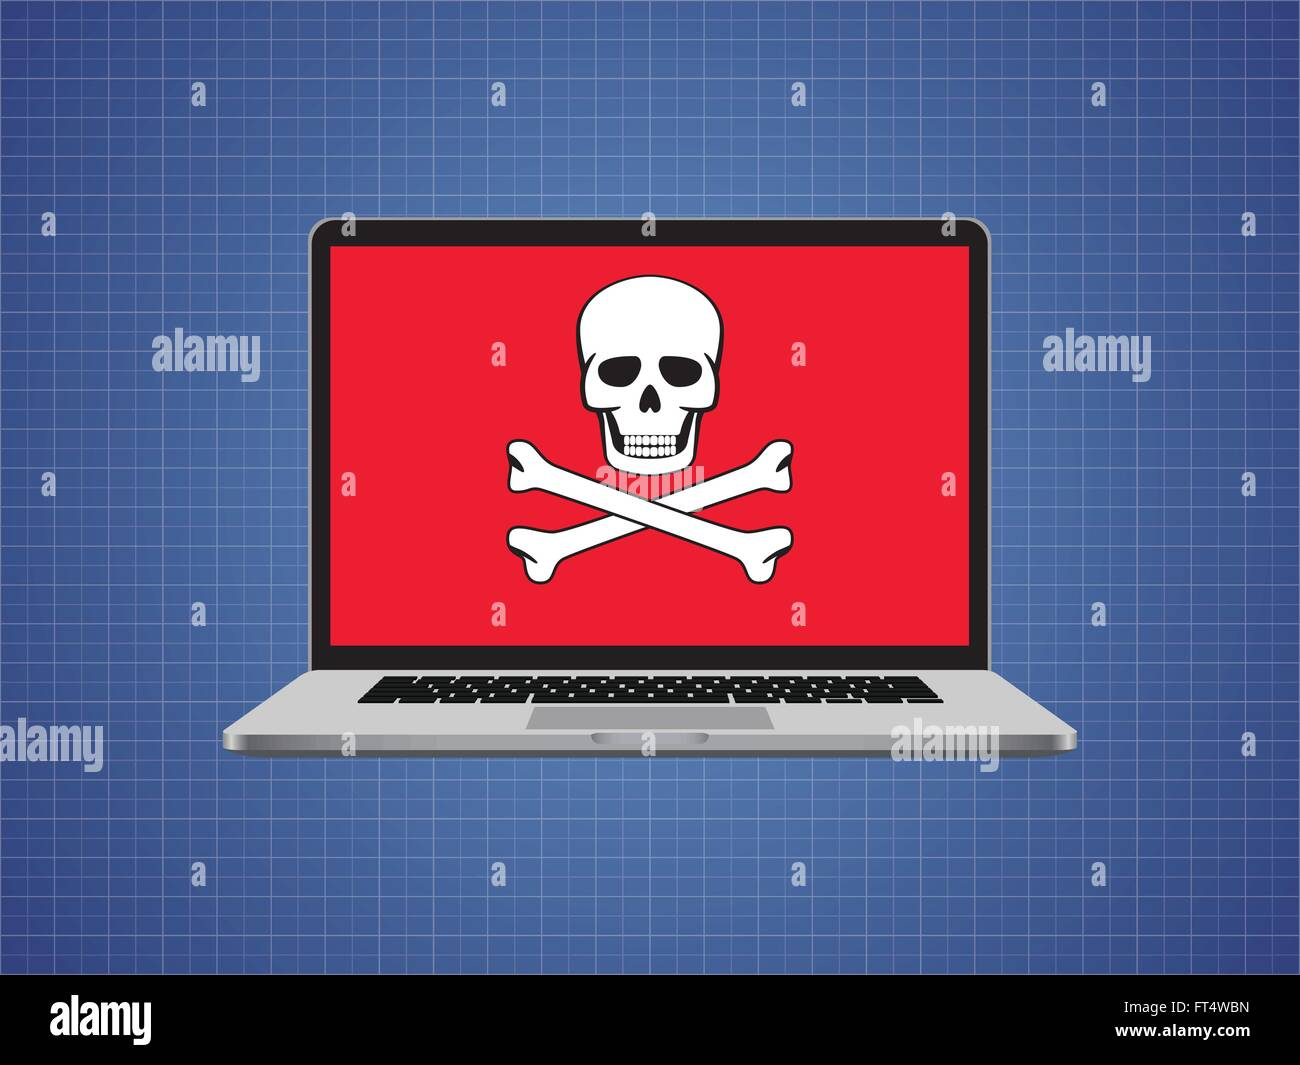 Computer hacked with skull symbol and danger alert stock vector computer hacked with skull symbol and danger alert buycottarizona Images